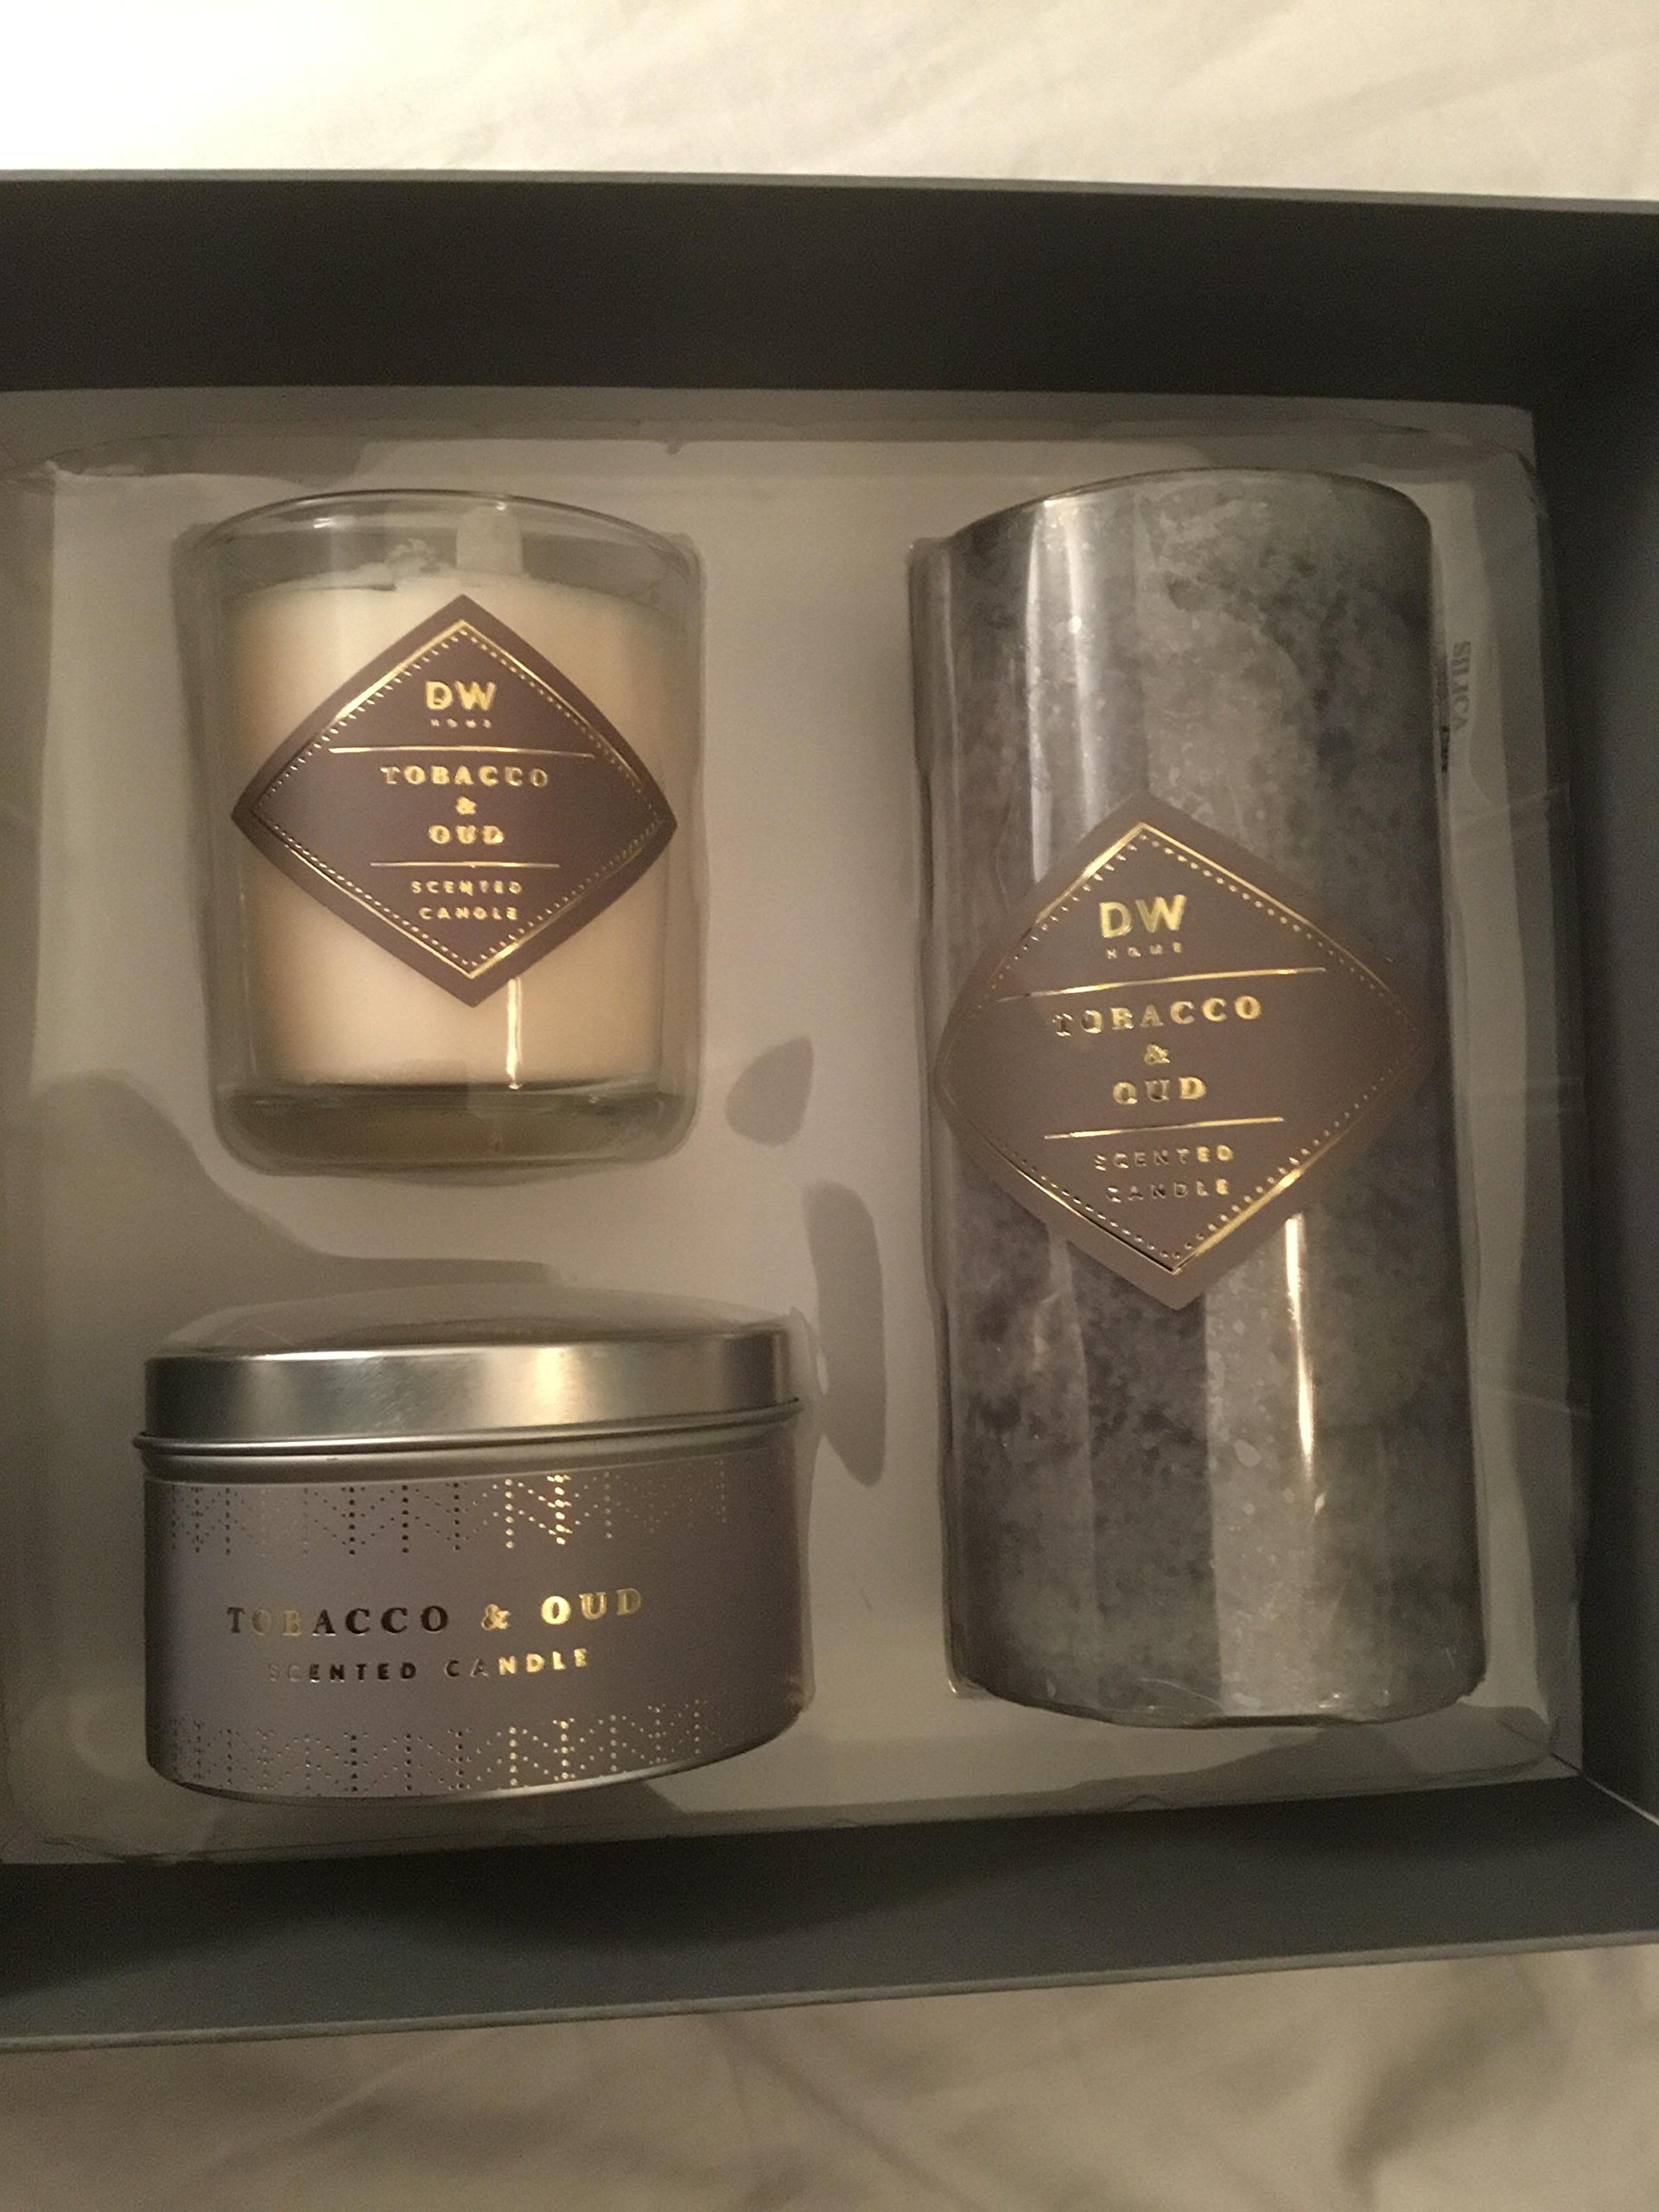 DW Home Tobacco & Oud Candle Gift Set